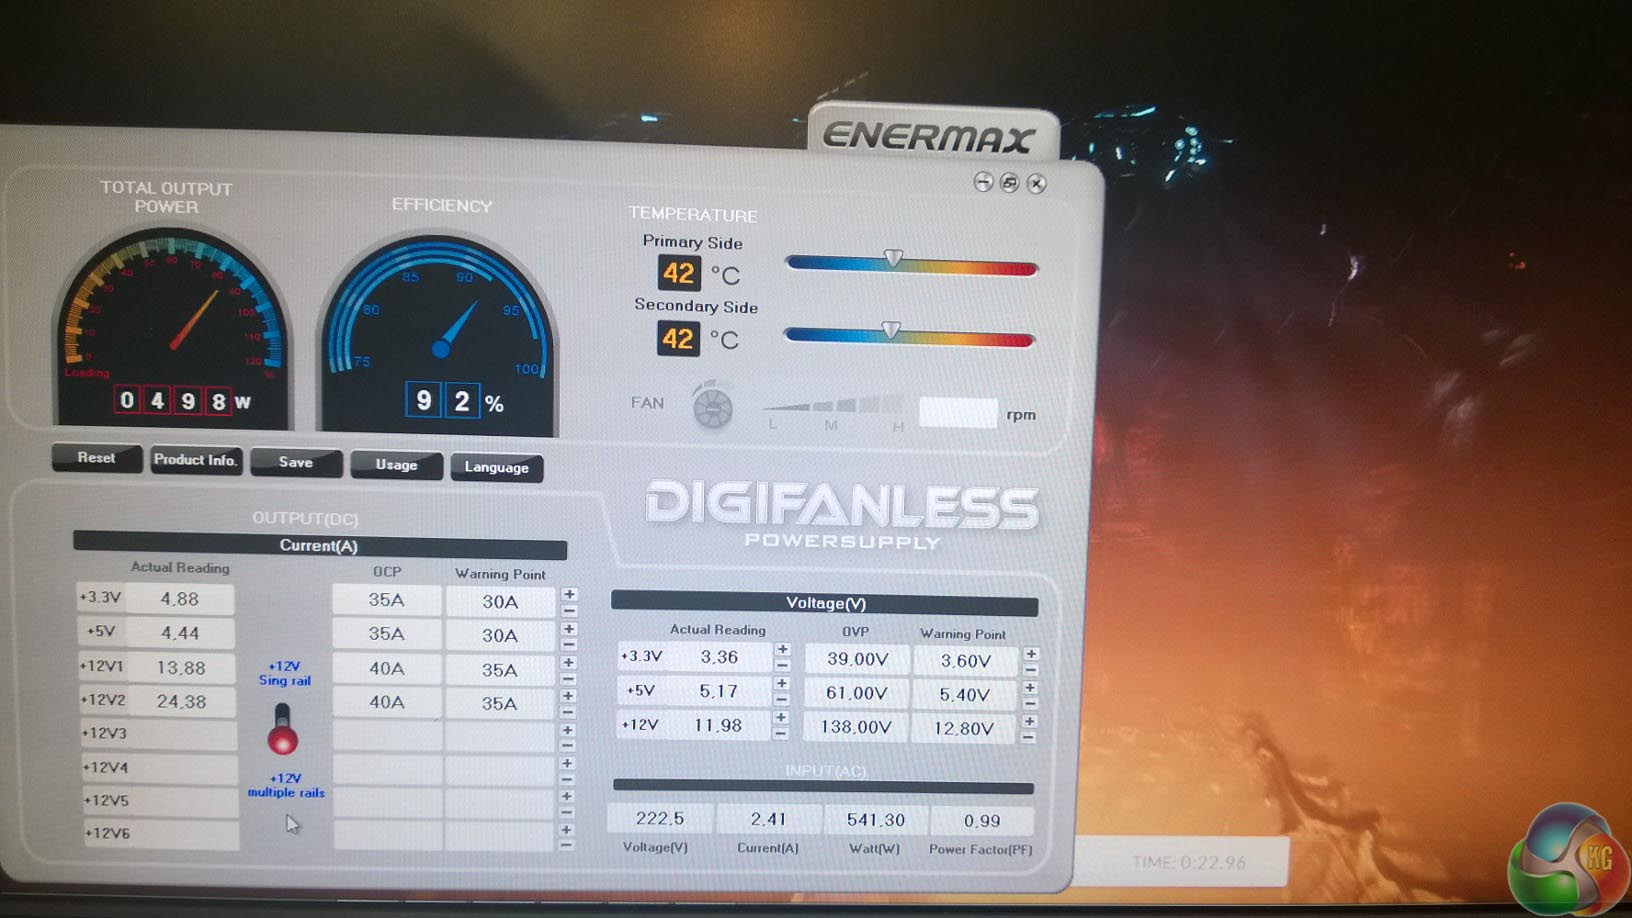 Enermax DigiFanless 550W 08